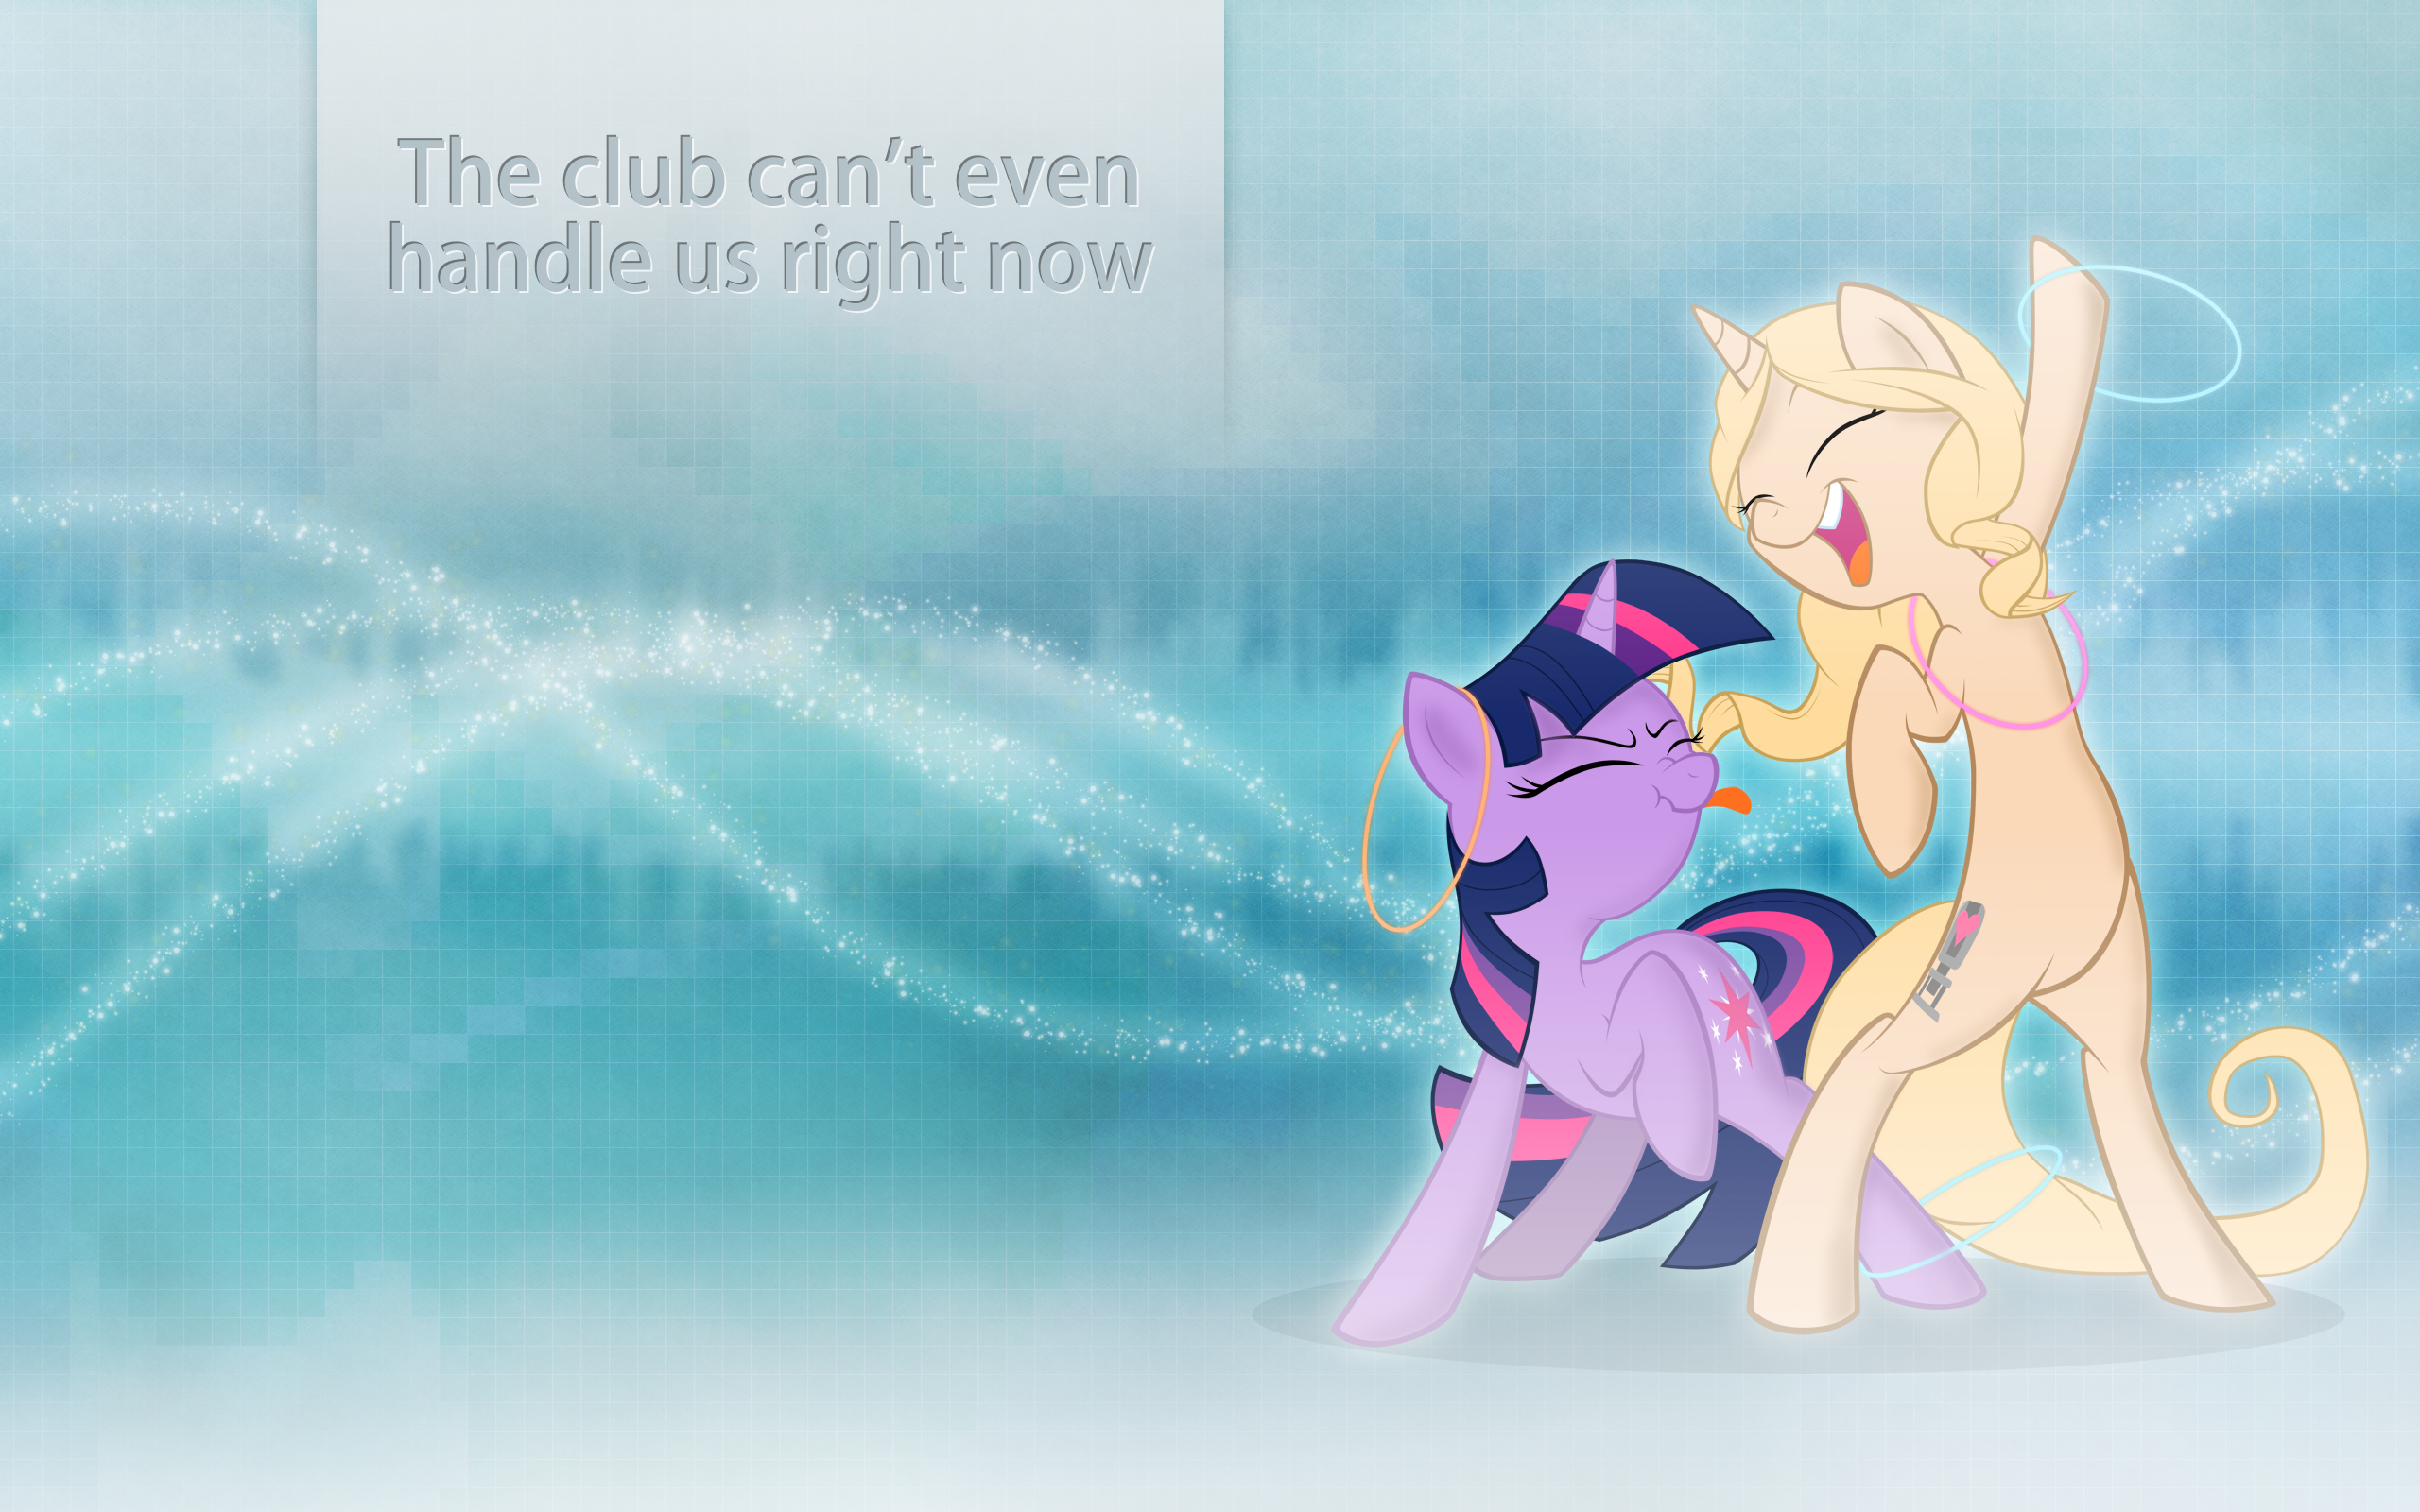 The Club Can't Even Handle Us Right Now by Lysok and SharkMachine